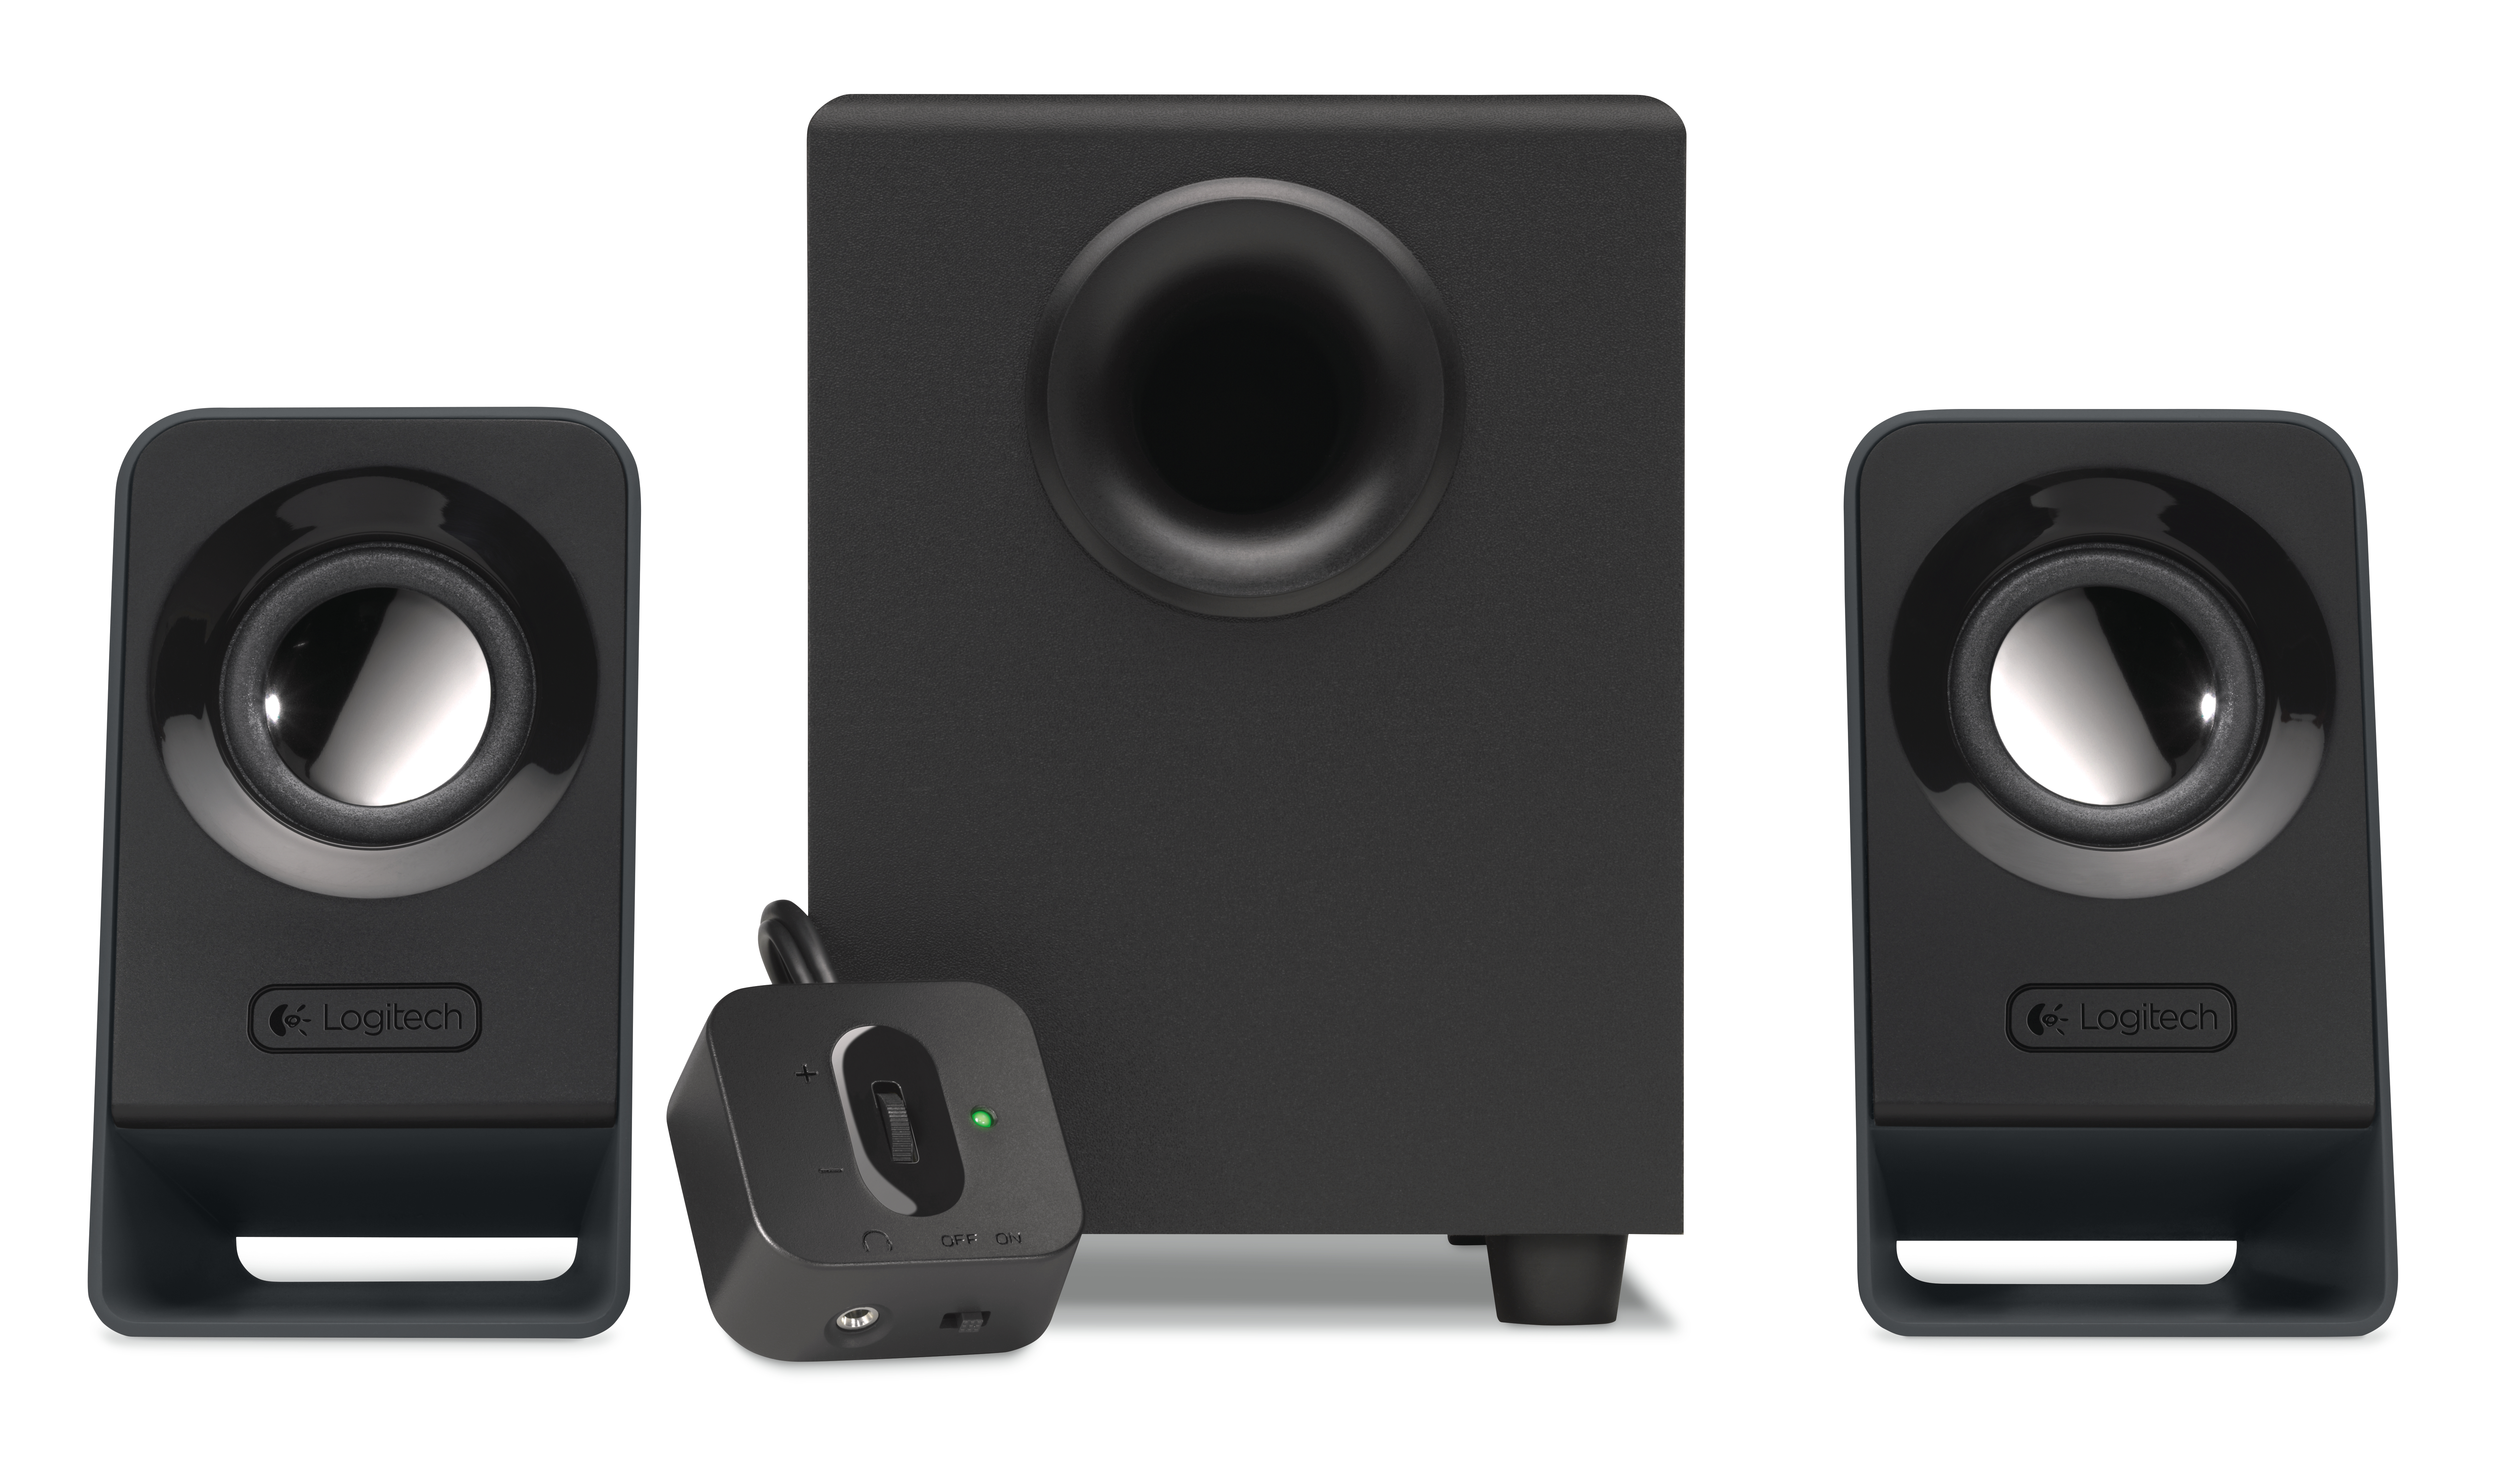 Logitech Introduces New Multimedia Speaker System with Space-Saving Design and Loud Bass